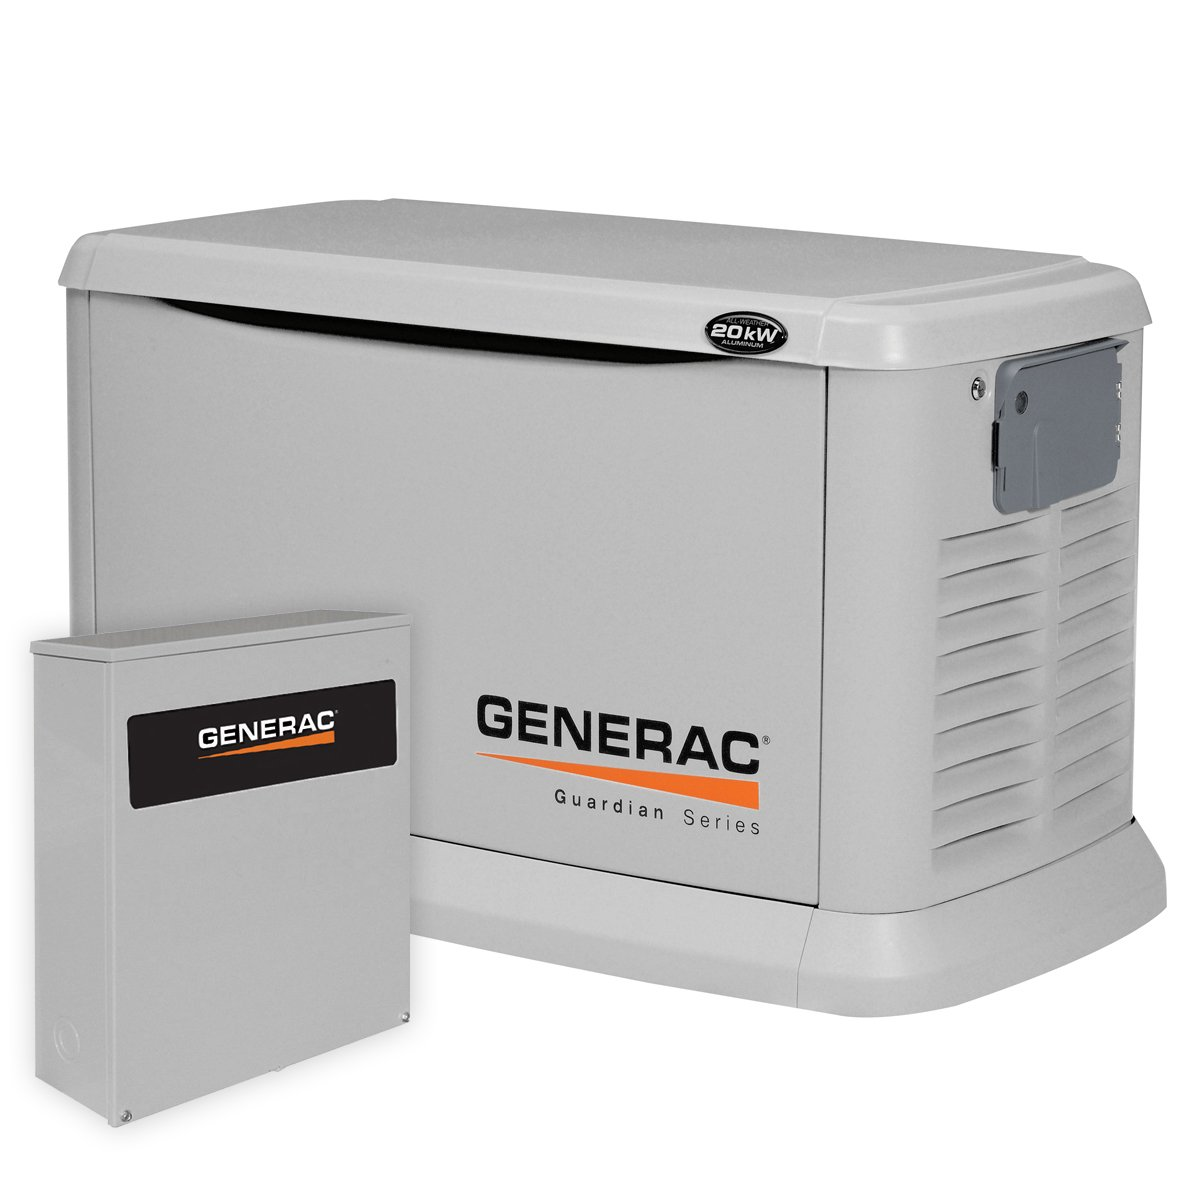 Generac 6244 20,000 Watt Air-Cooled Aluminum Enclosure Liquid Propane/Natural Gas Powered Standby Generator with 200SE Transfer Switch (Discontinued by Manufacturer)